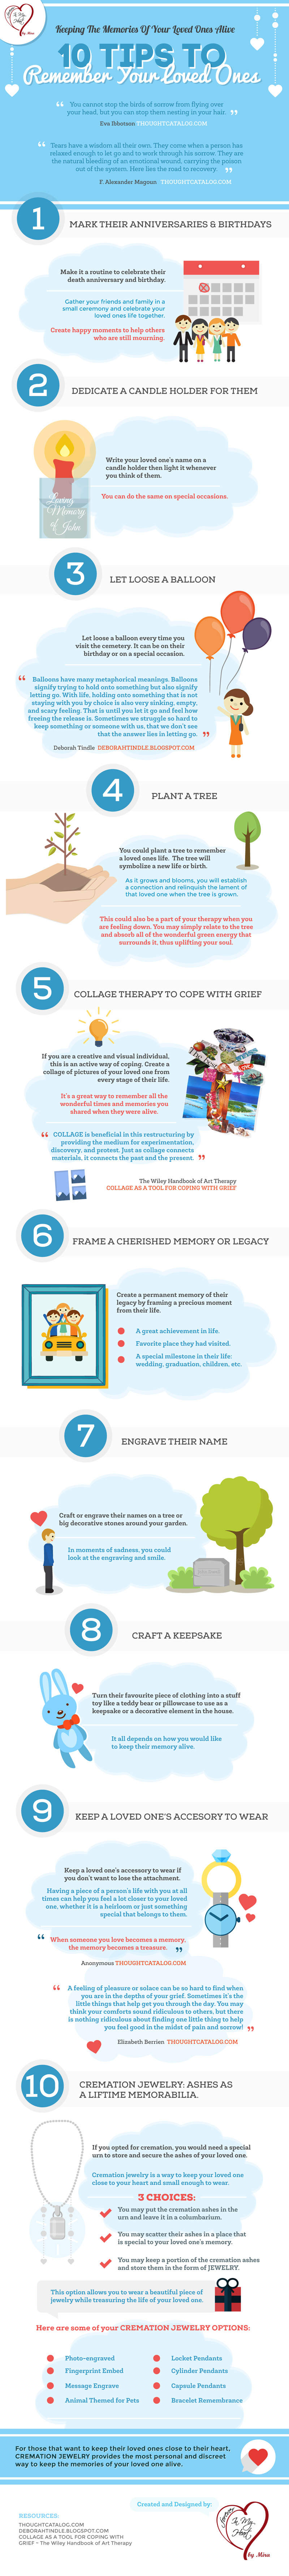 remember loved ones infographic